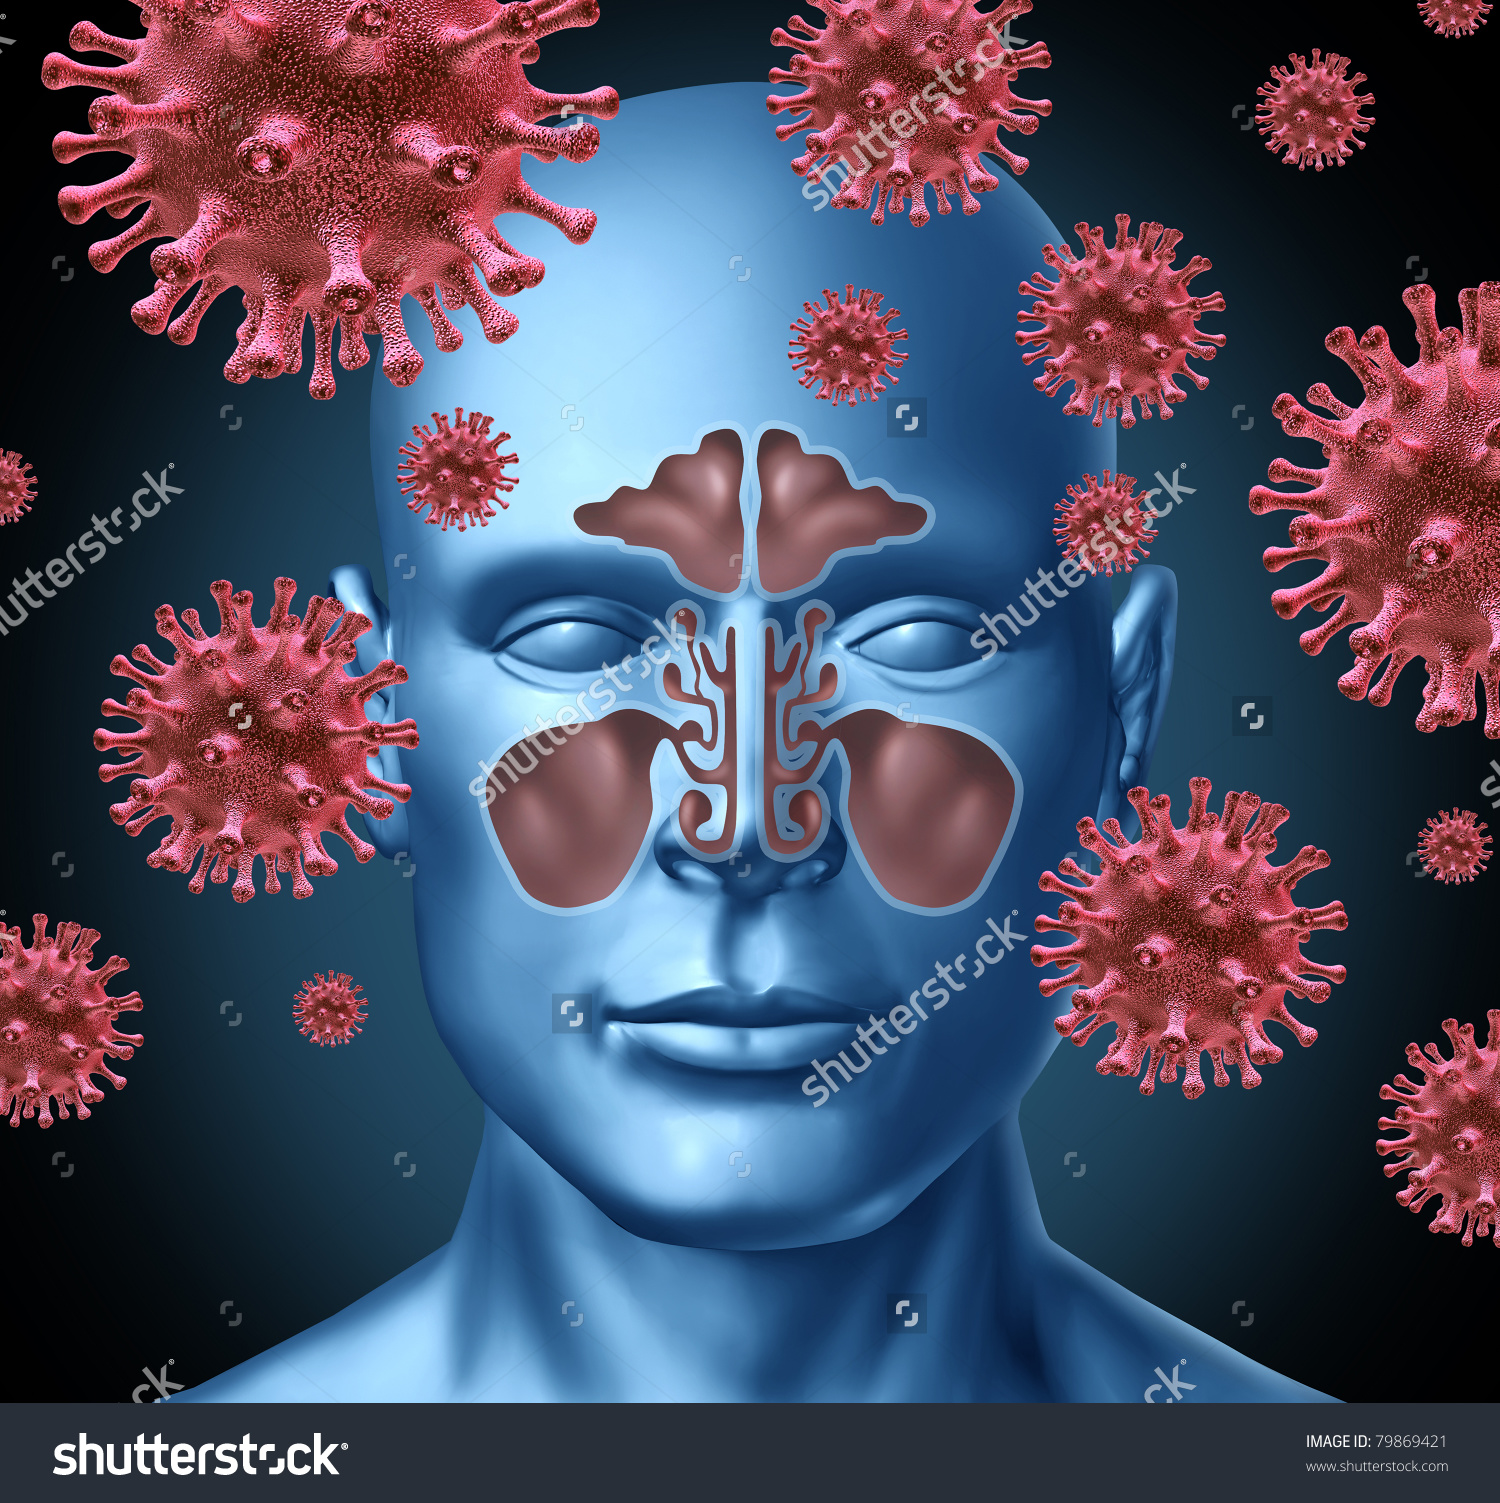 Cold Virus Infection Medical Symbol Represented Stock Illustration.